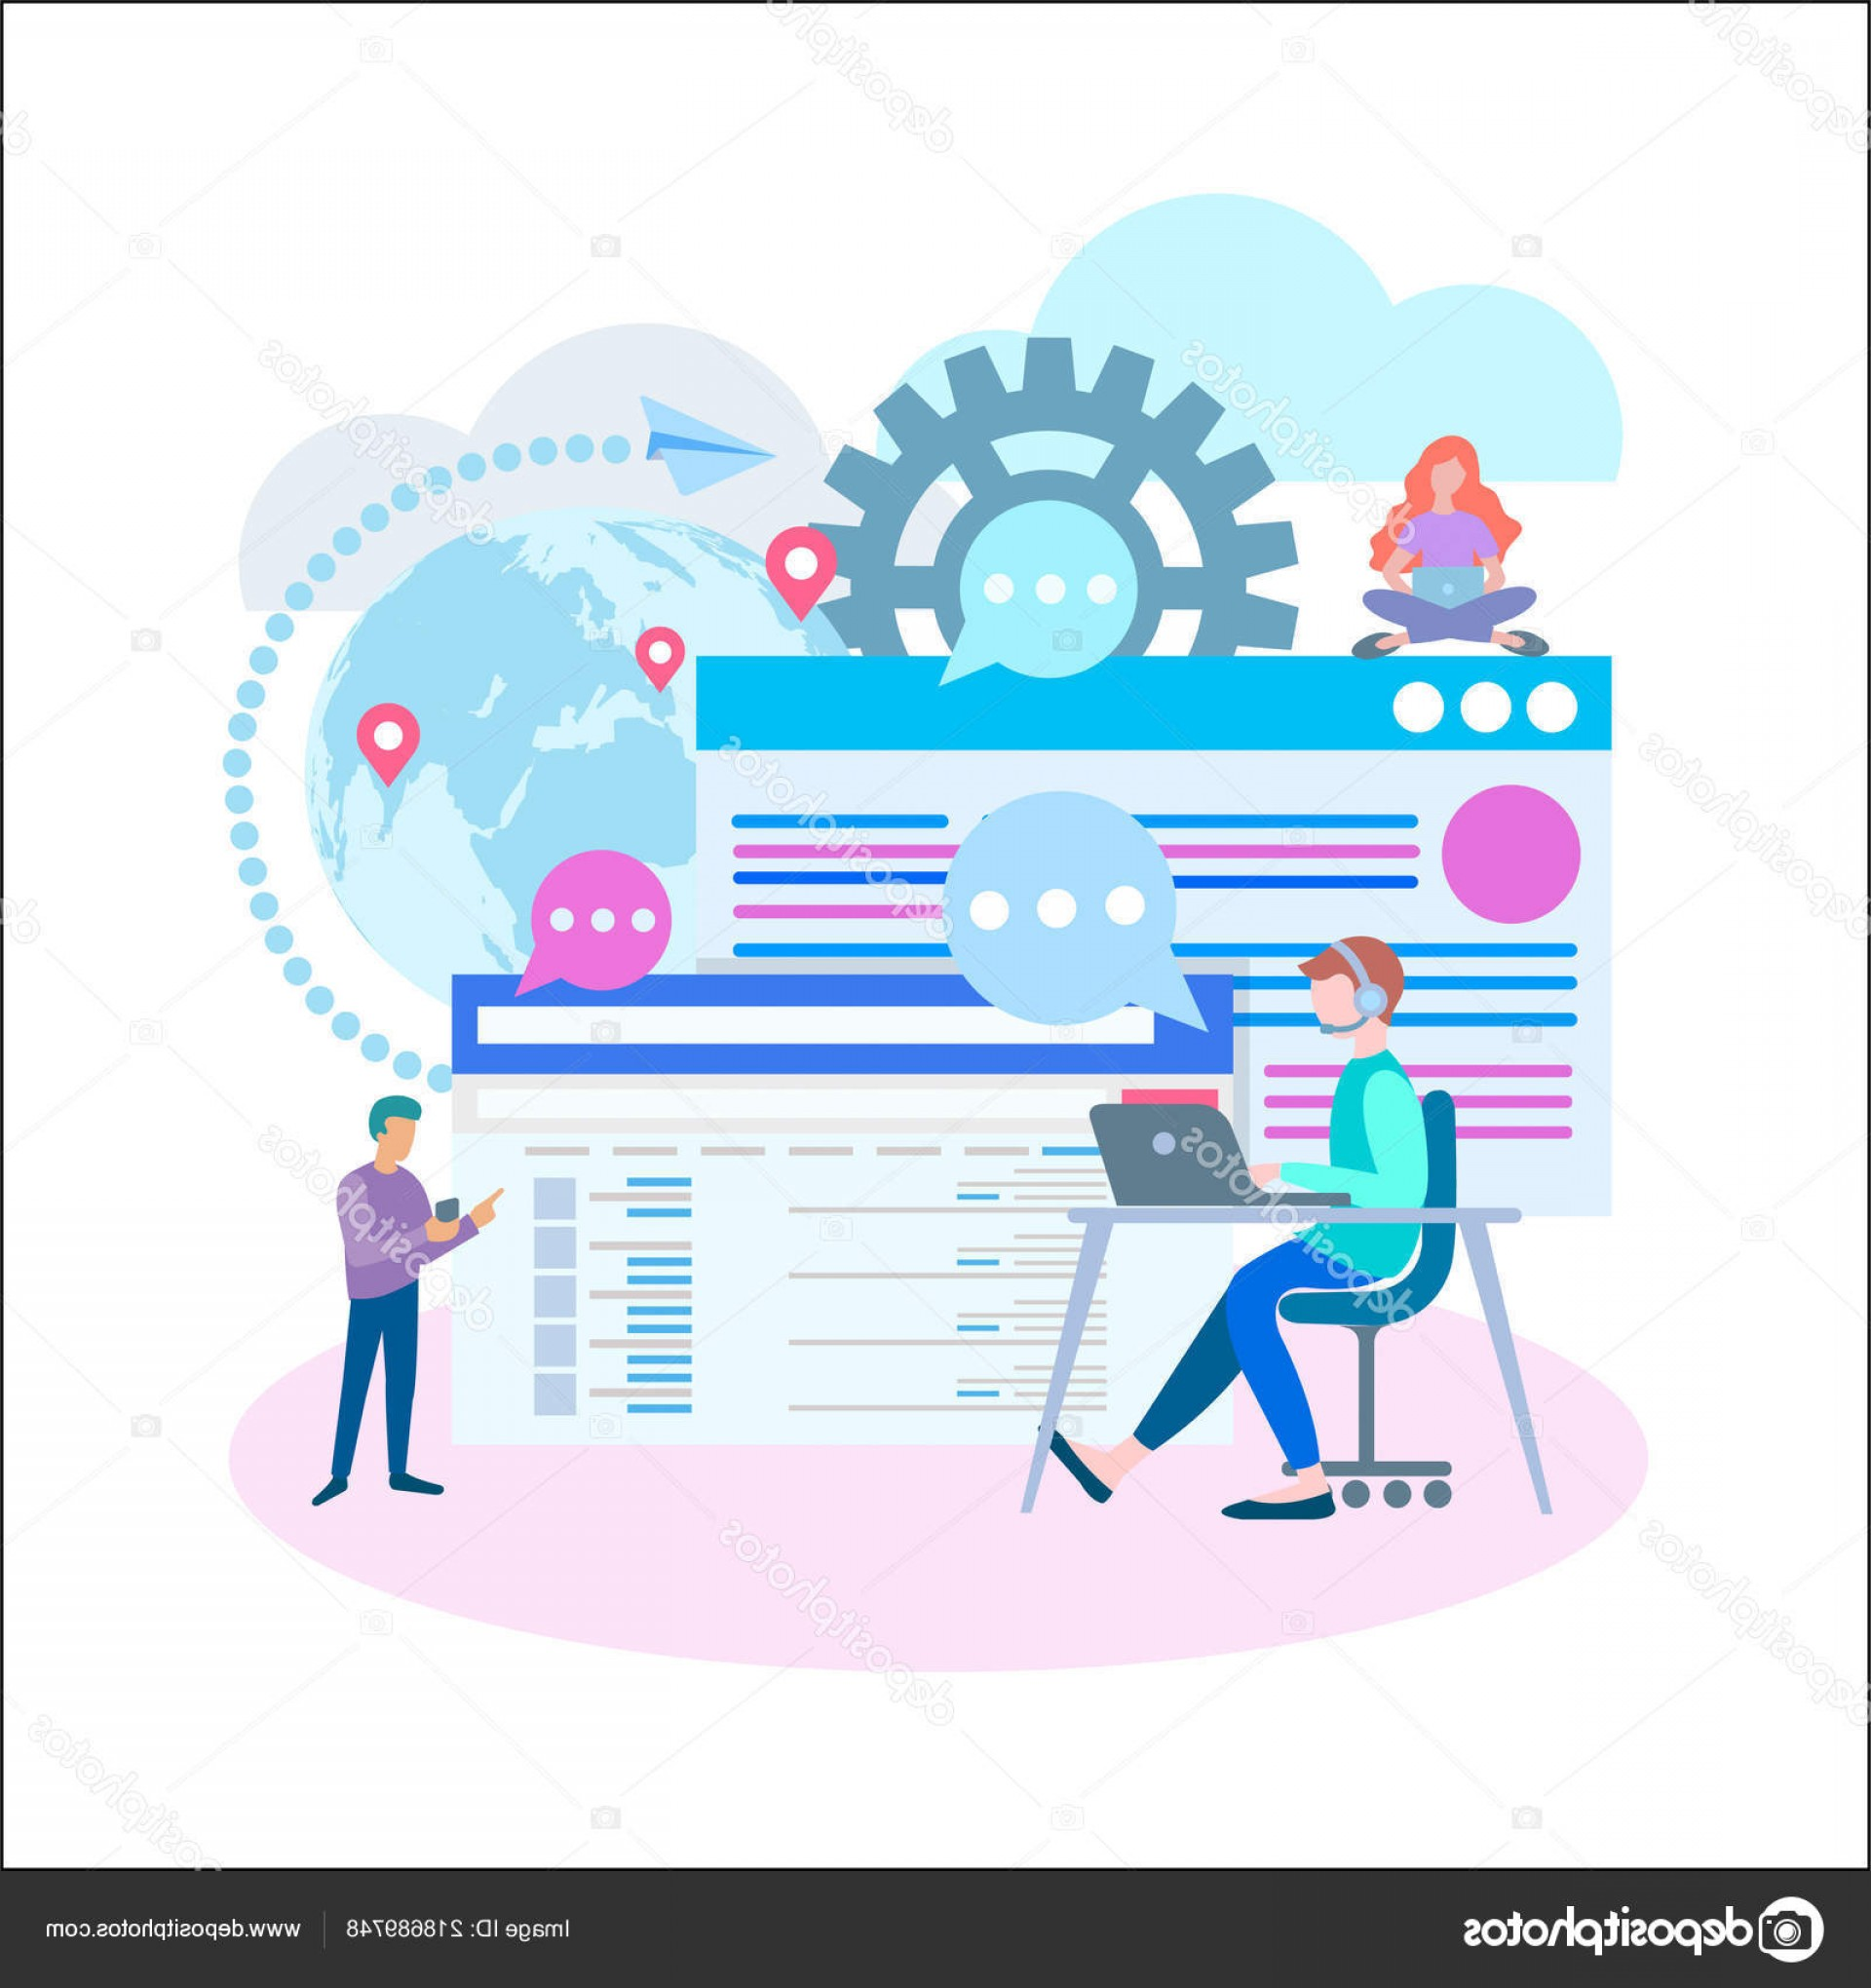 Vector Applications On Computers: Stock Illustration Marketers Work Online Computers Mobile